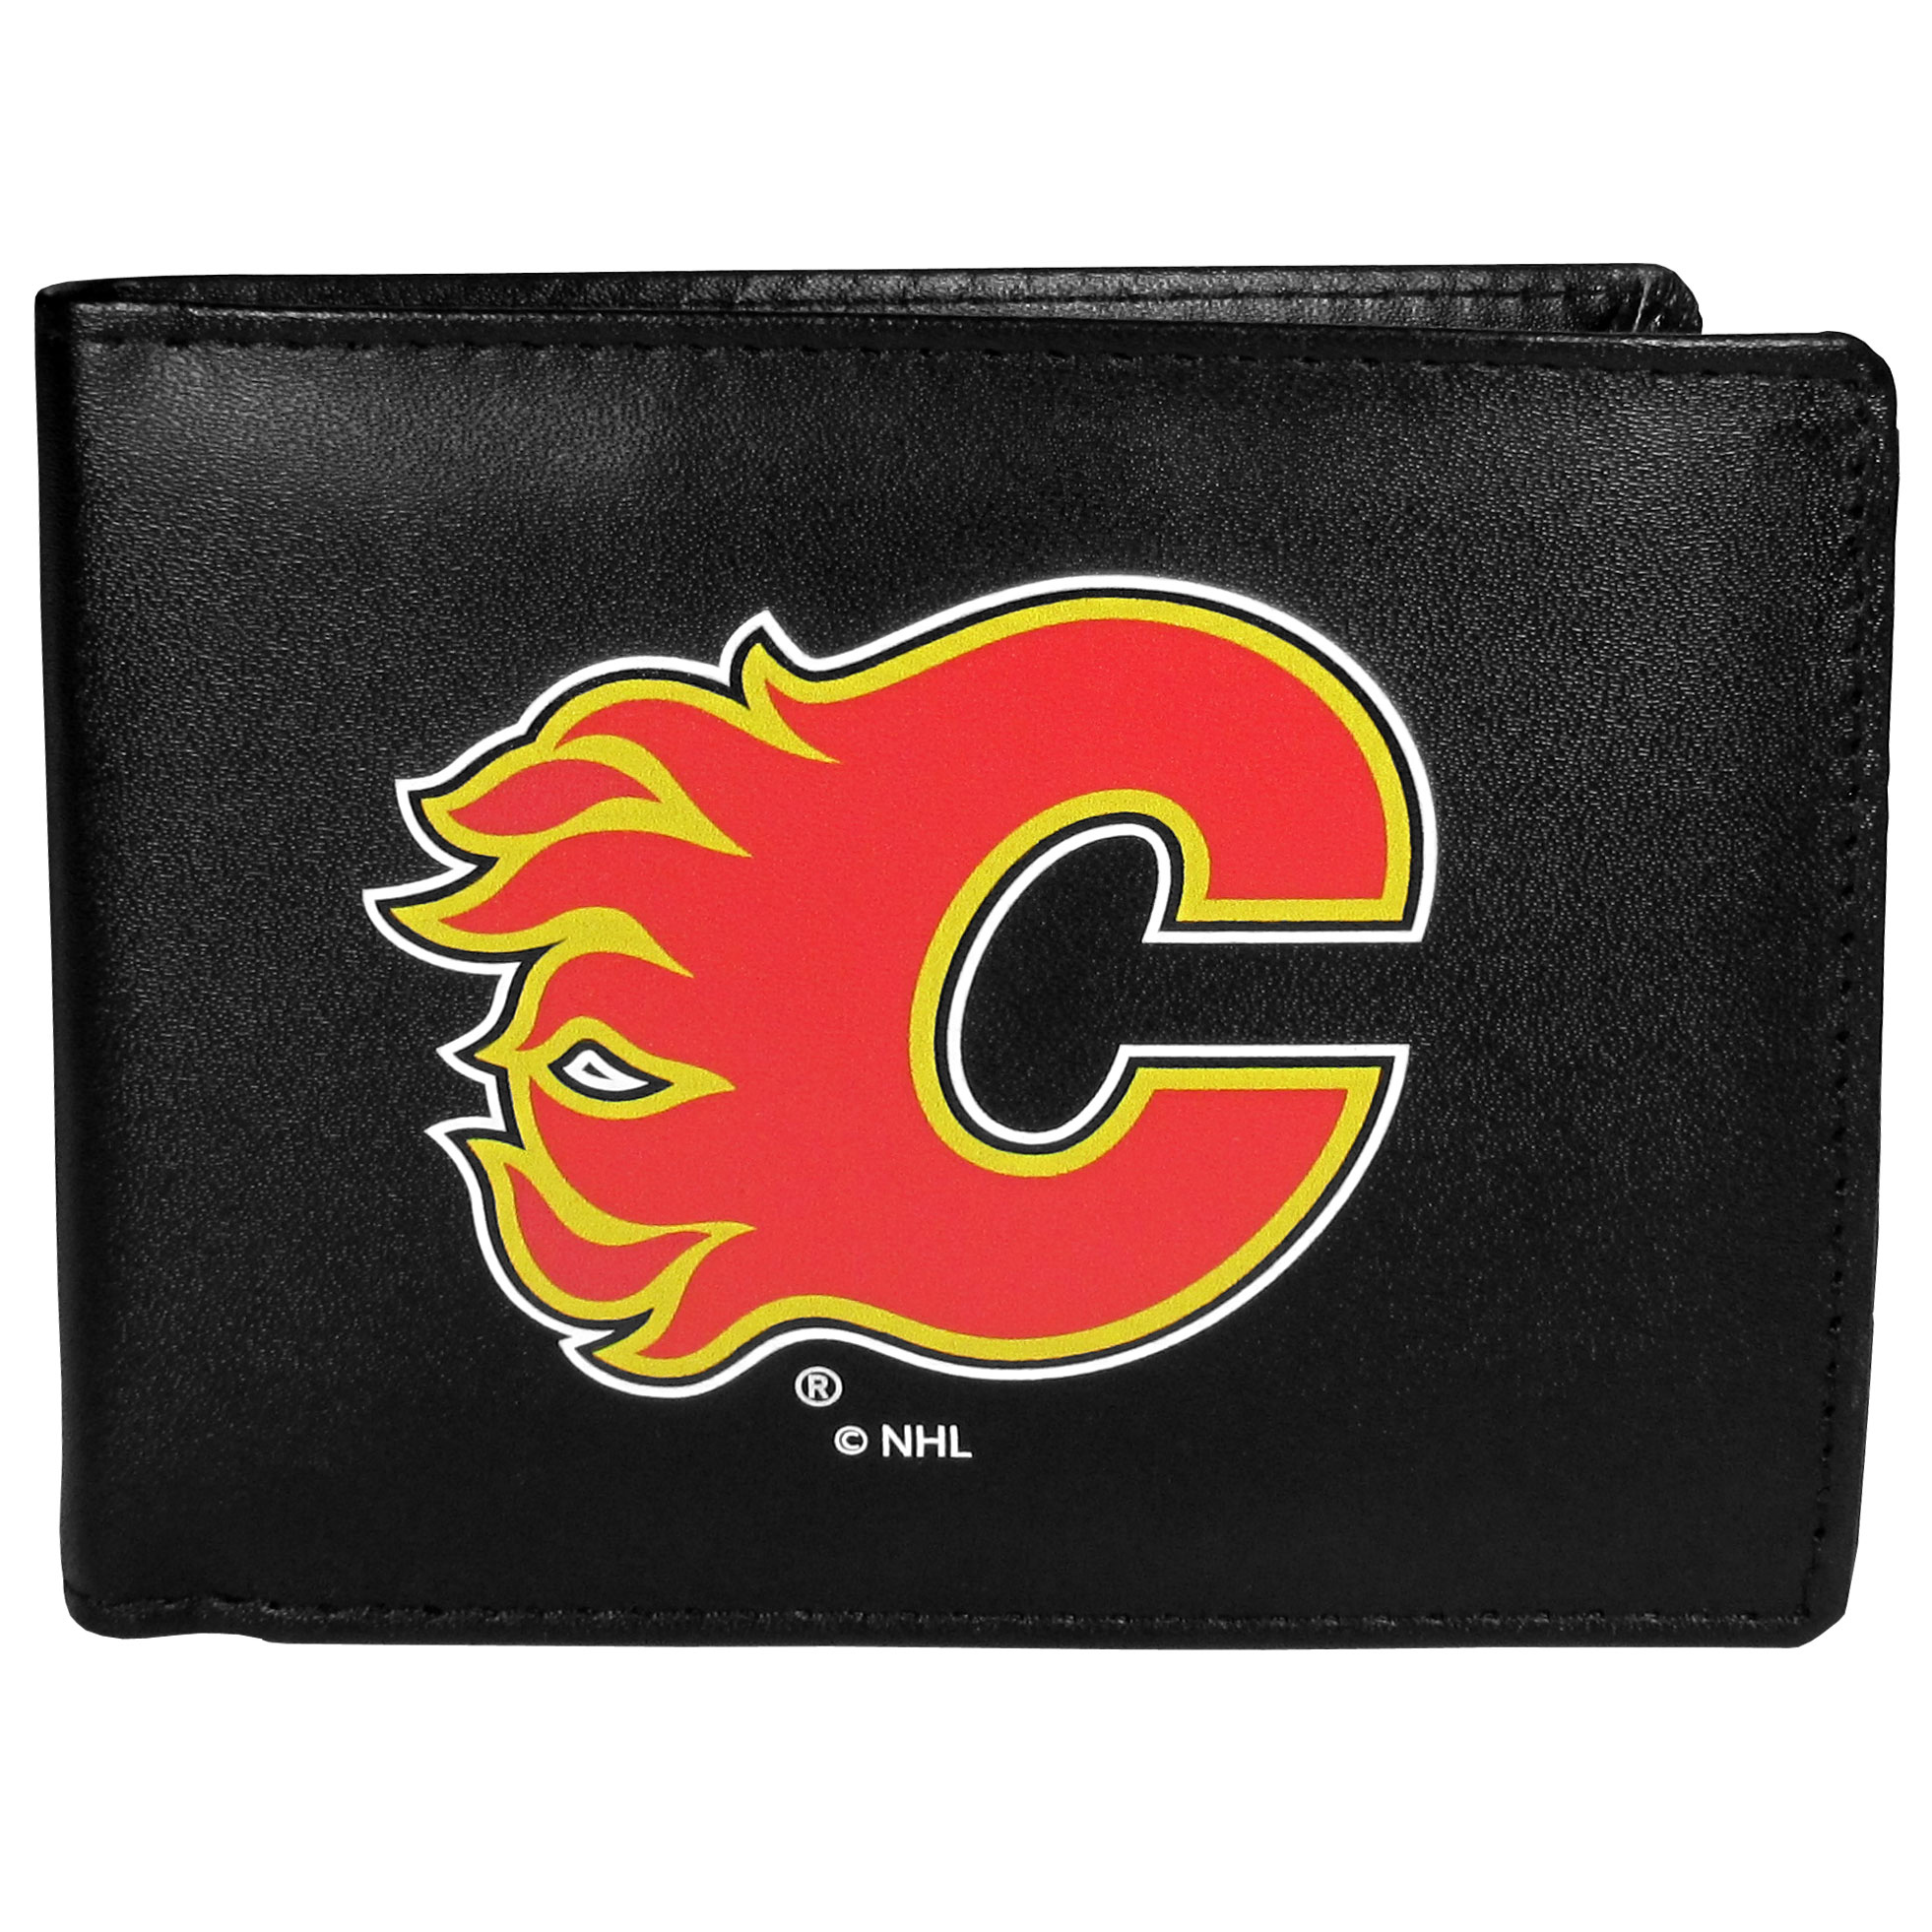 Calgary Flames® Leather Bi-fold Wallet, Large Logo - Our classic fine leather bi-fold wallet is meticulously crafted with genuine leather that will age beautifully so you will have a quality wallet for years to come. The wallet opens to a large, billfold pocket and numerous credit card slots and has a convenient windowed ID slot. The front of the wallet features an extra large Calgary Flames® printed logo.